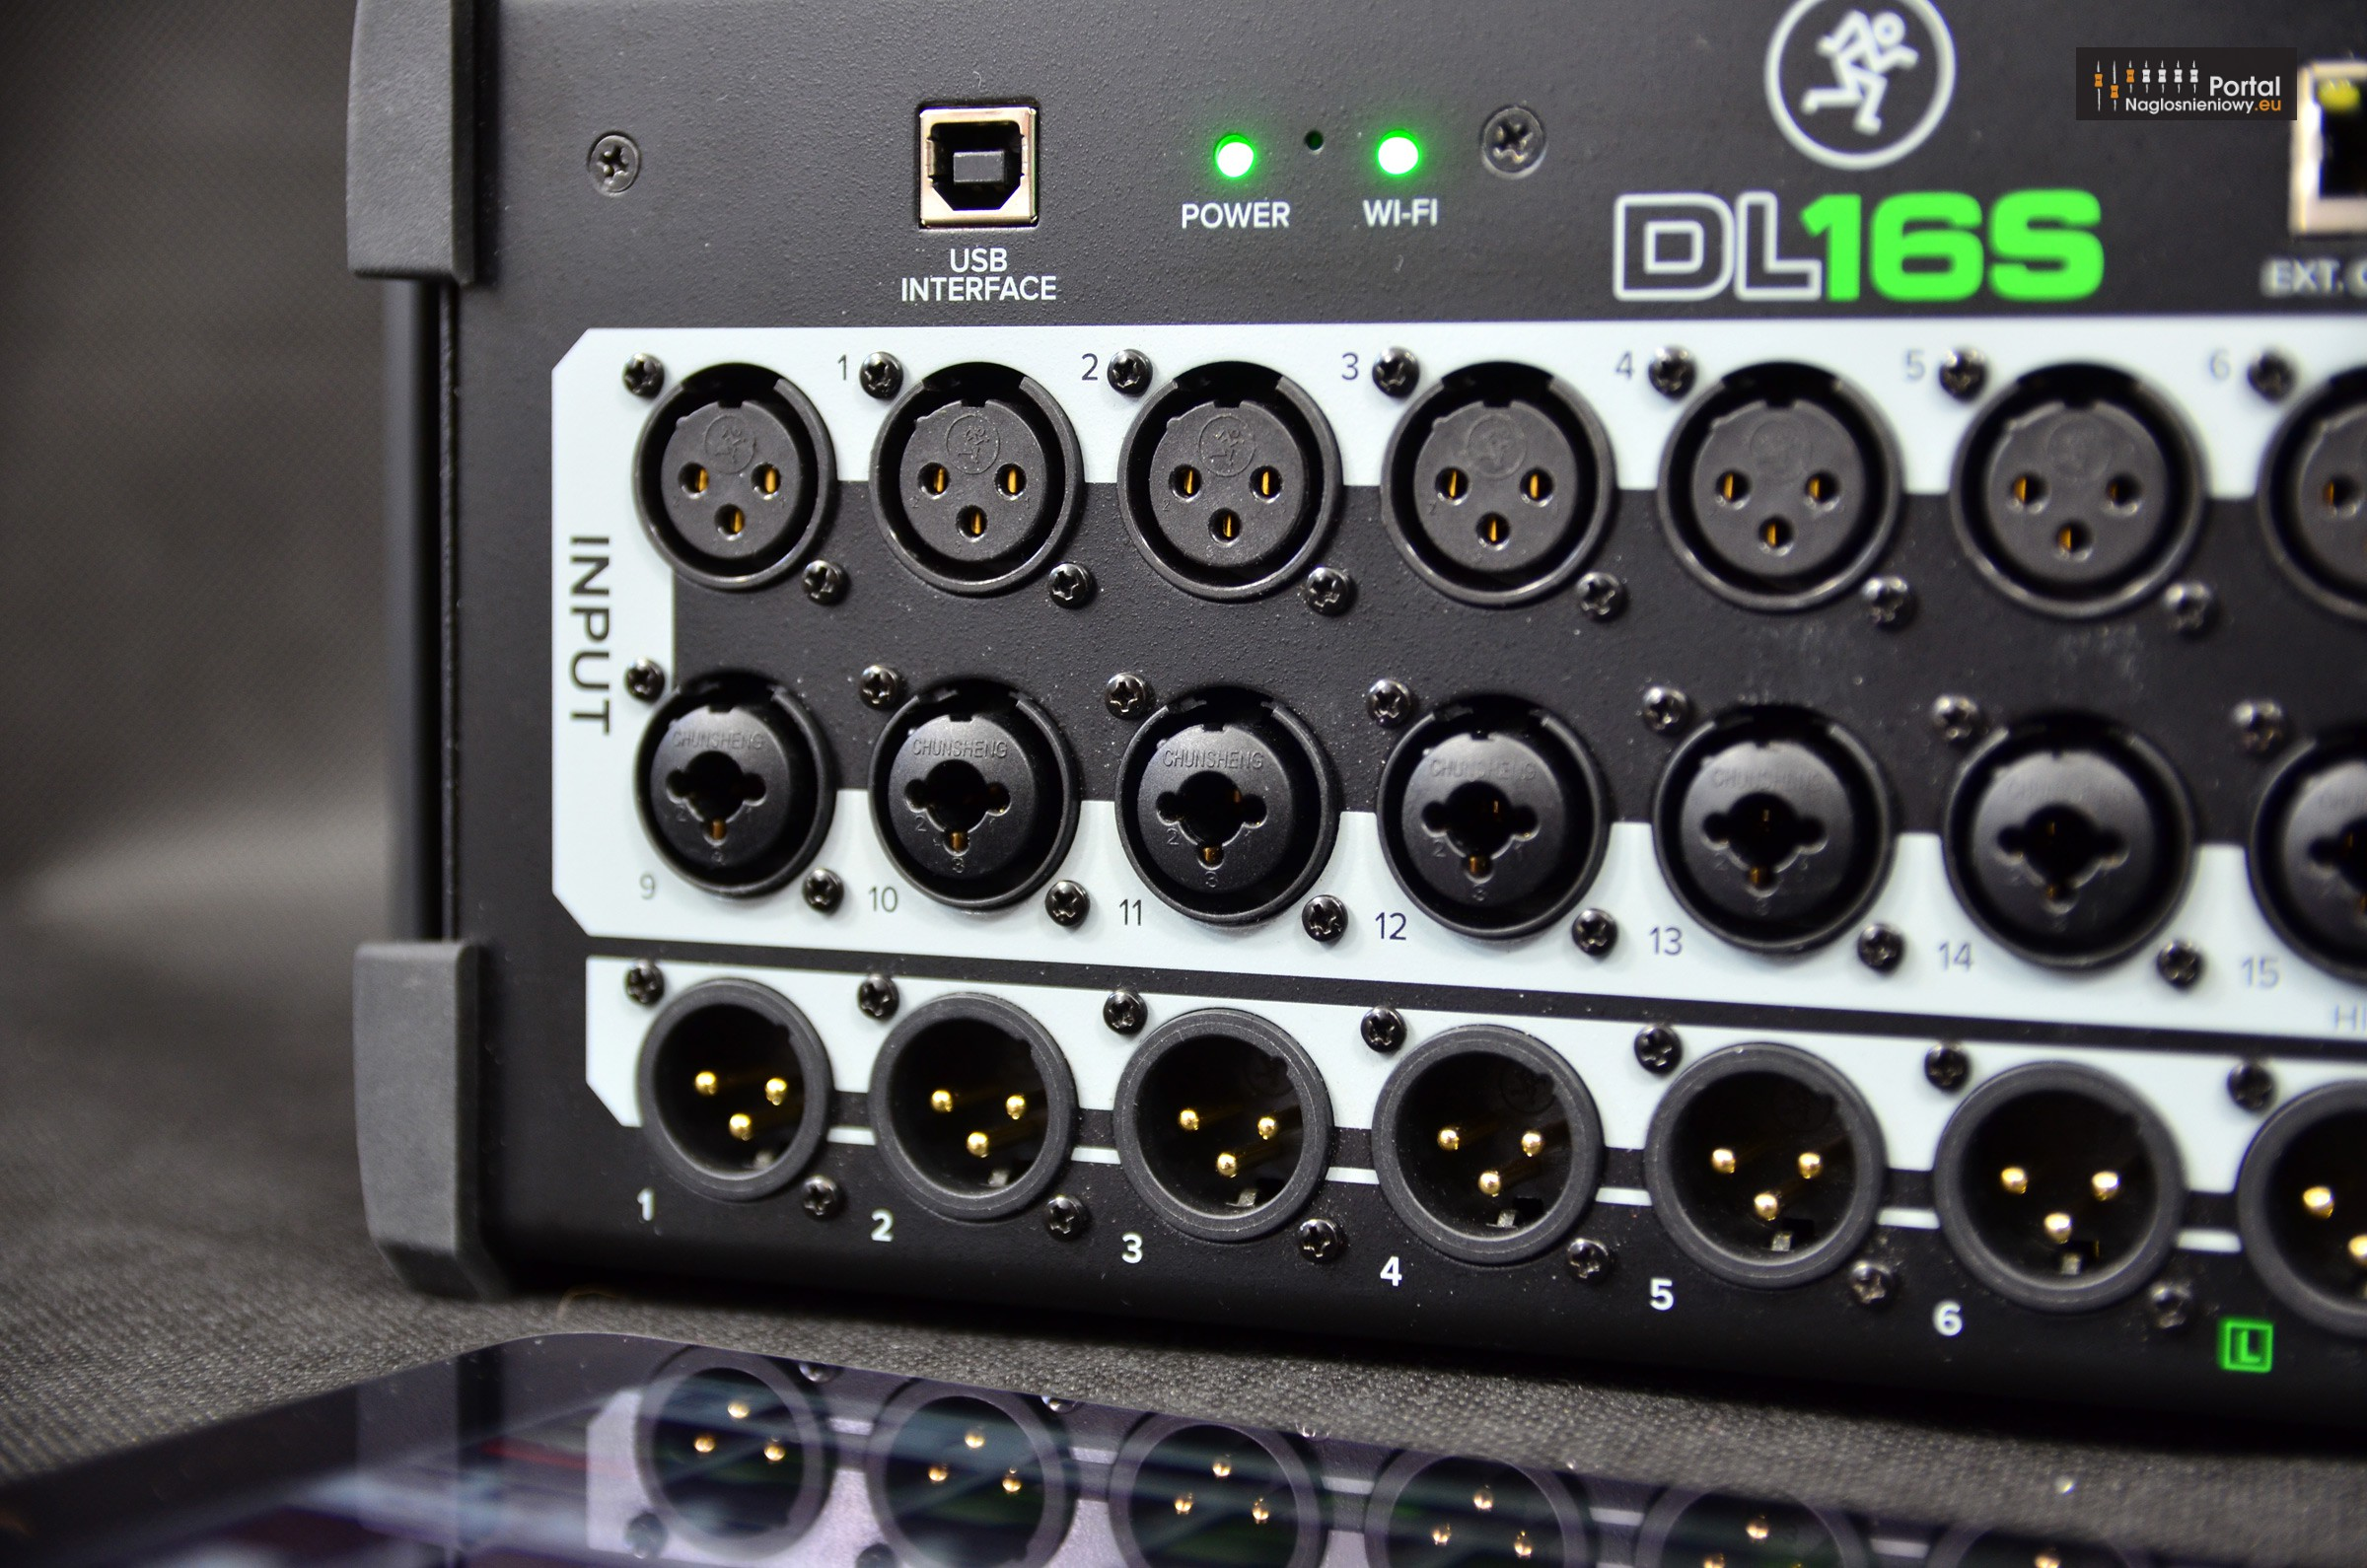 Mackie DL16S digital mixer USB 3